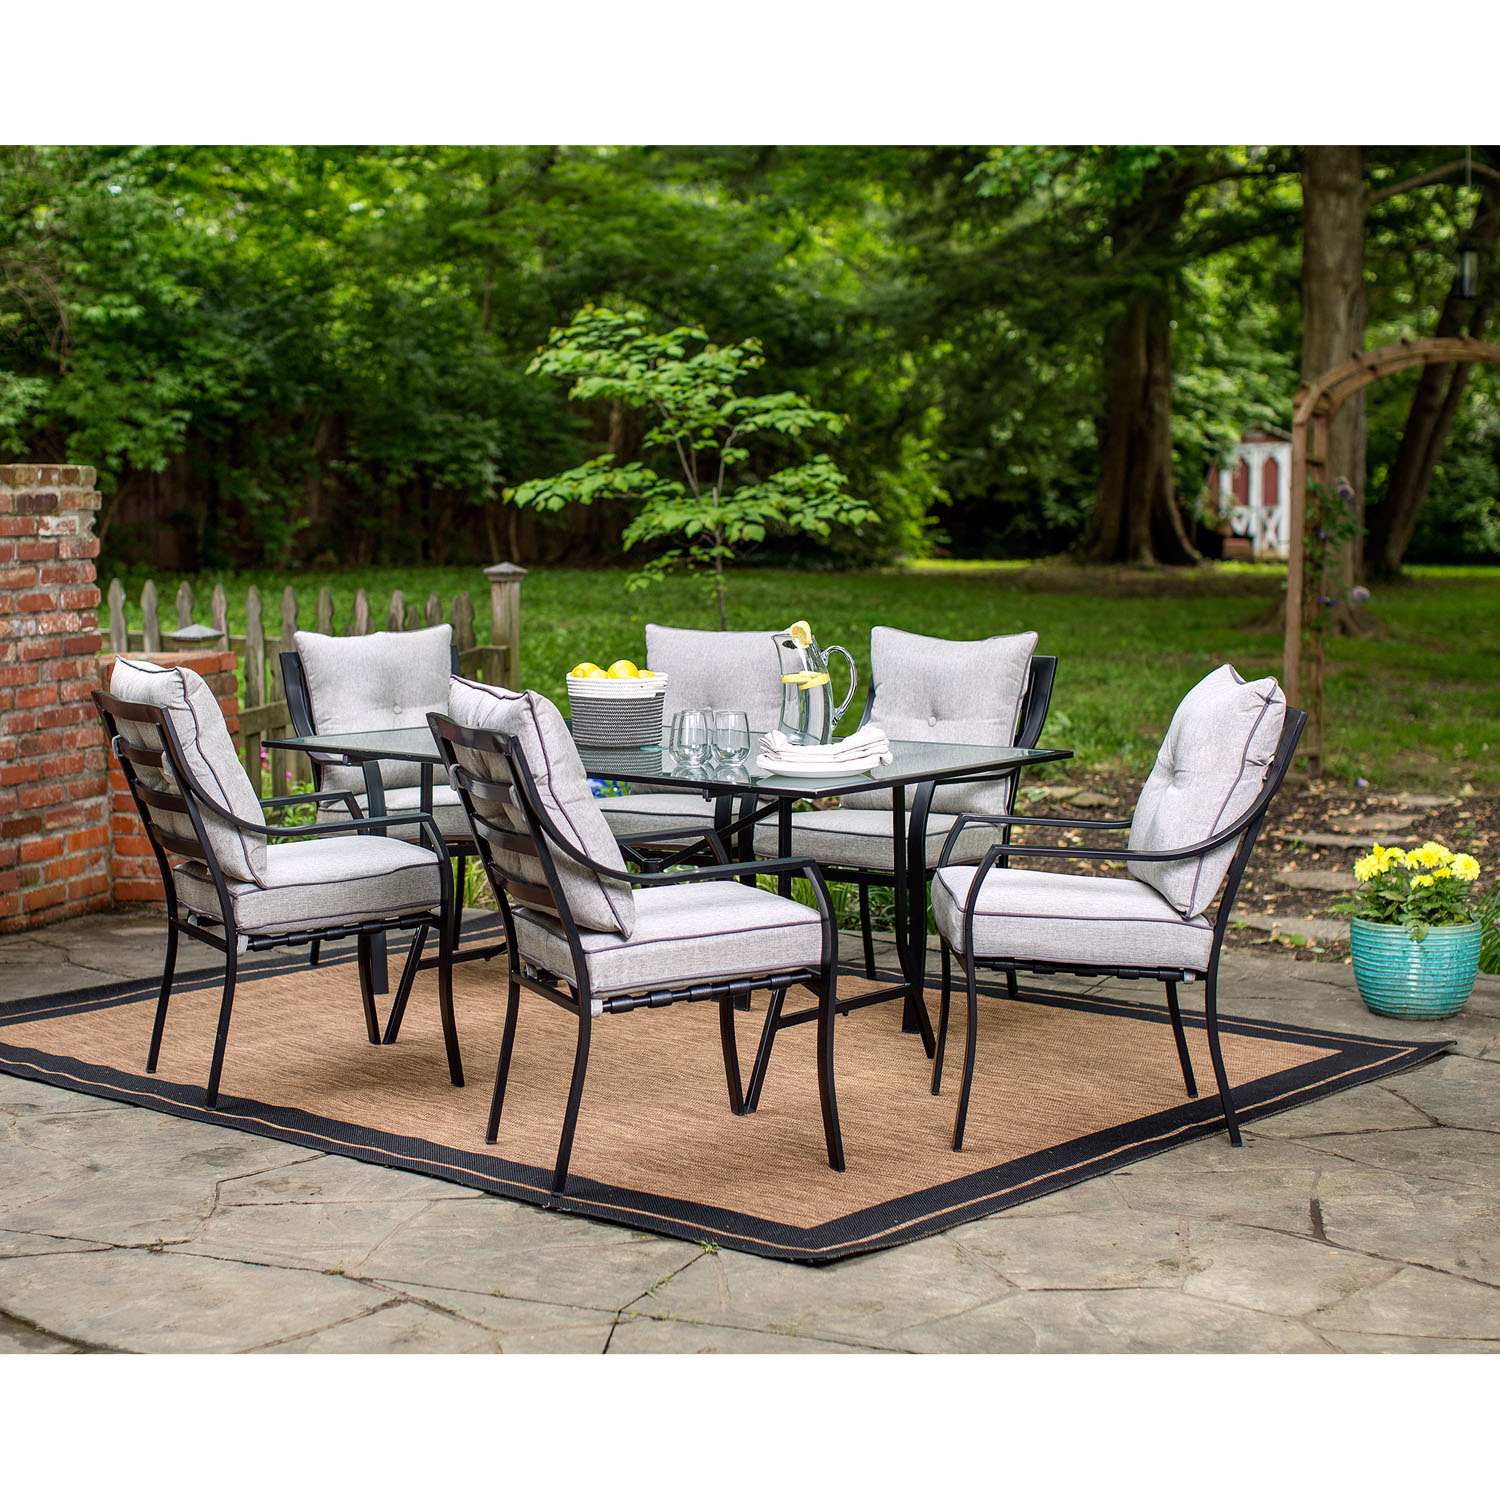 7-Piece Outdoor Dining Set - Walmart.com